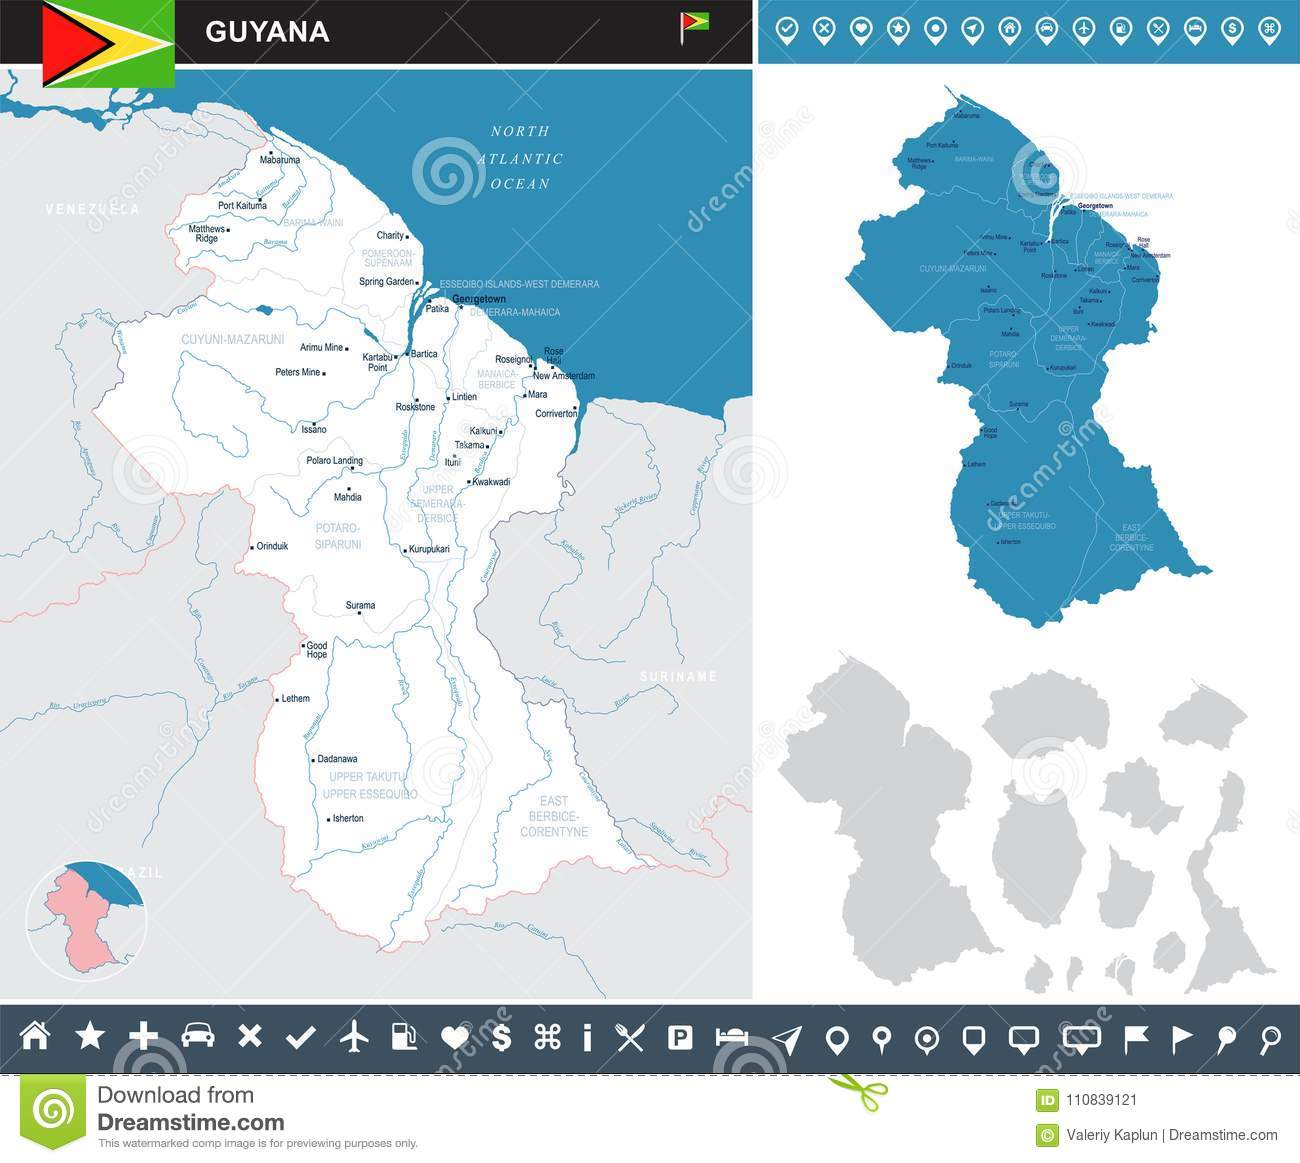 Where Is Guyana Located On The World Map.Guyana Infographic Map Detailed Vector Illustration Stock